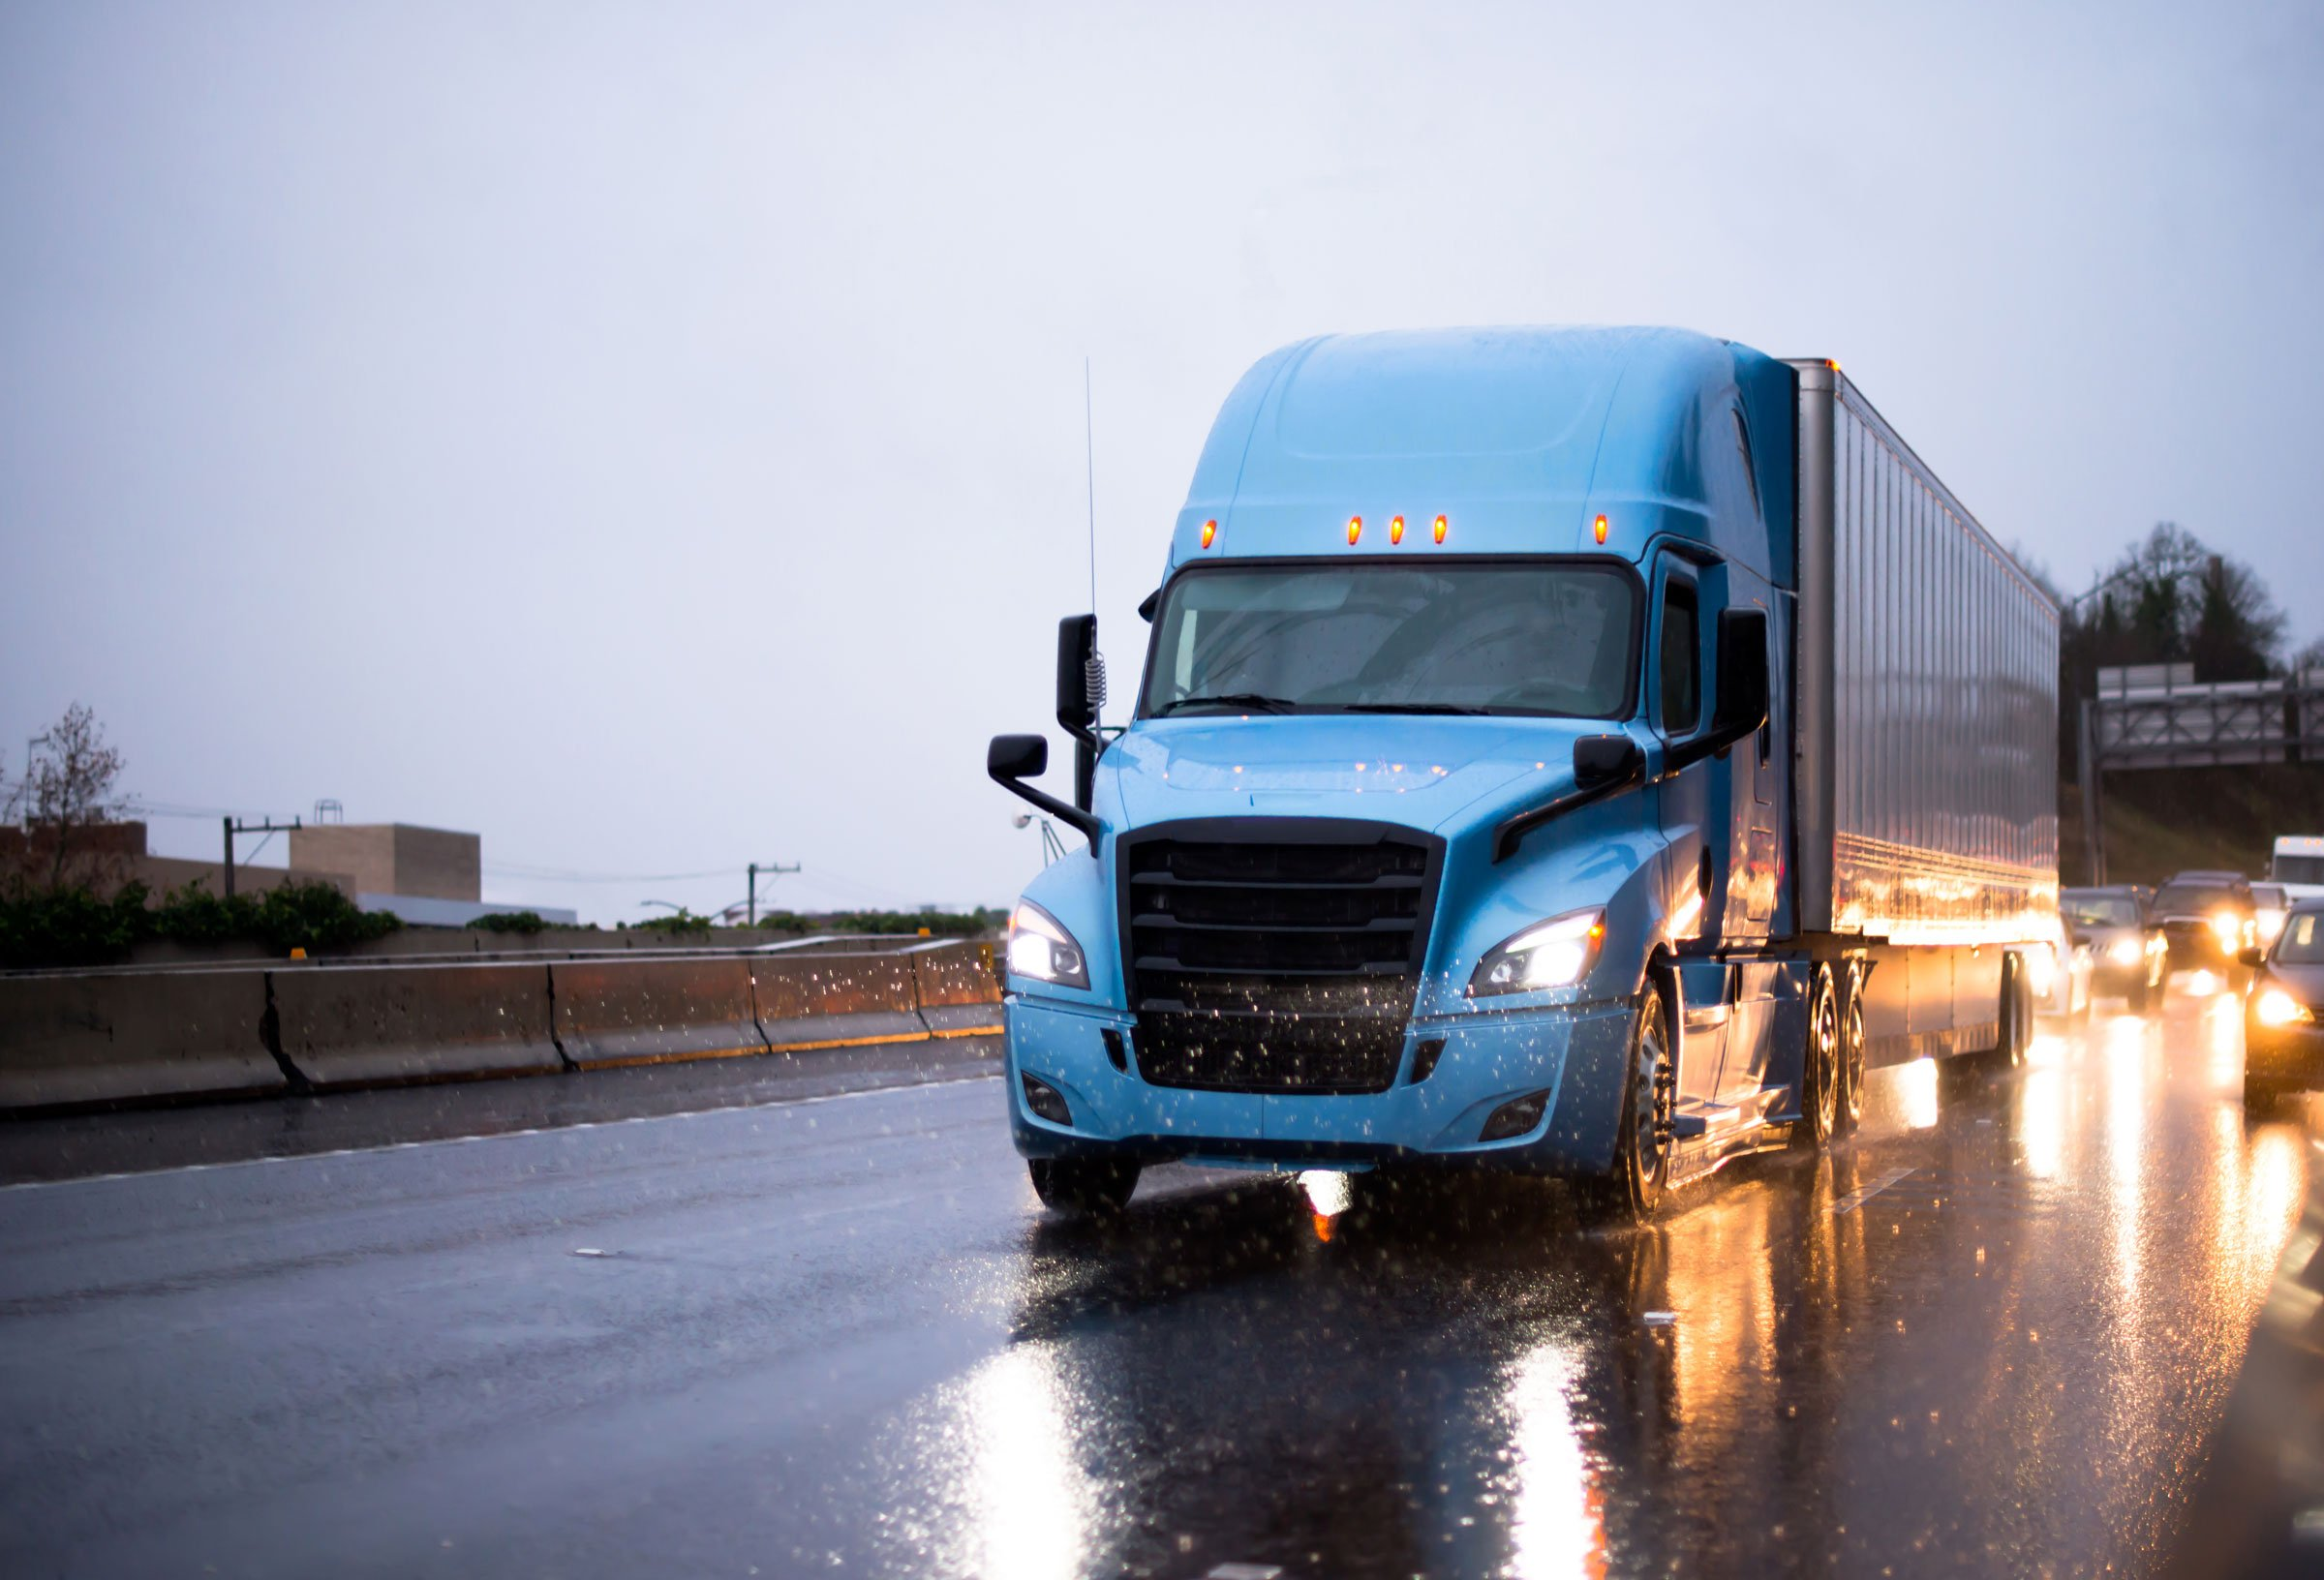 Blue-Truck-In-Rain-Hazards.jpg